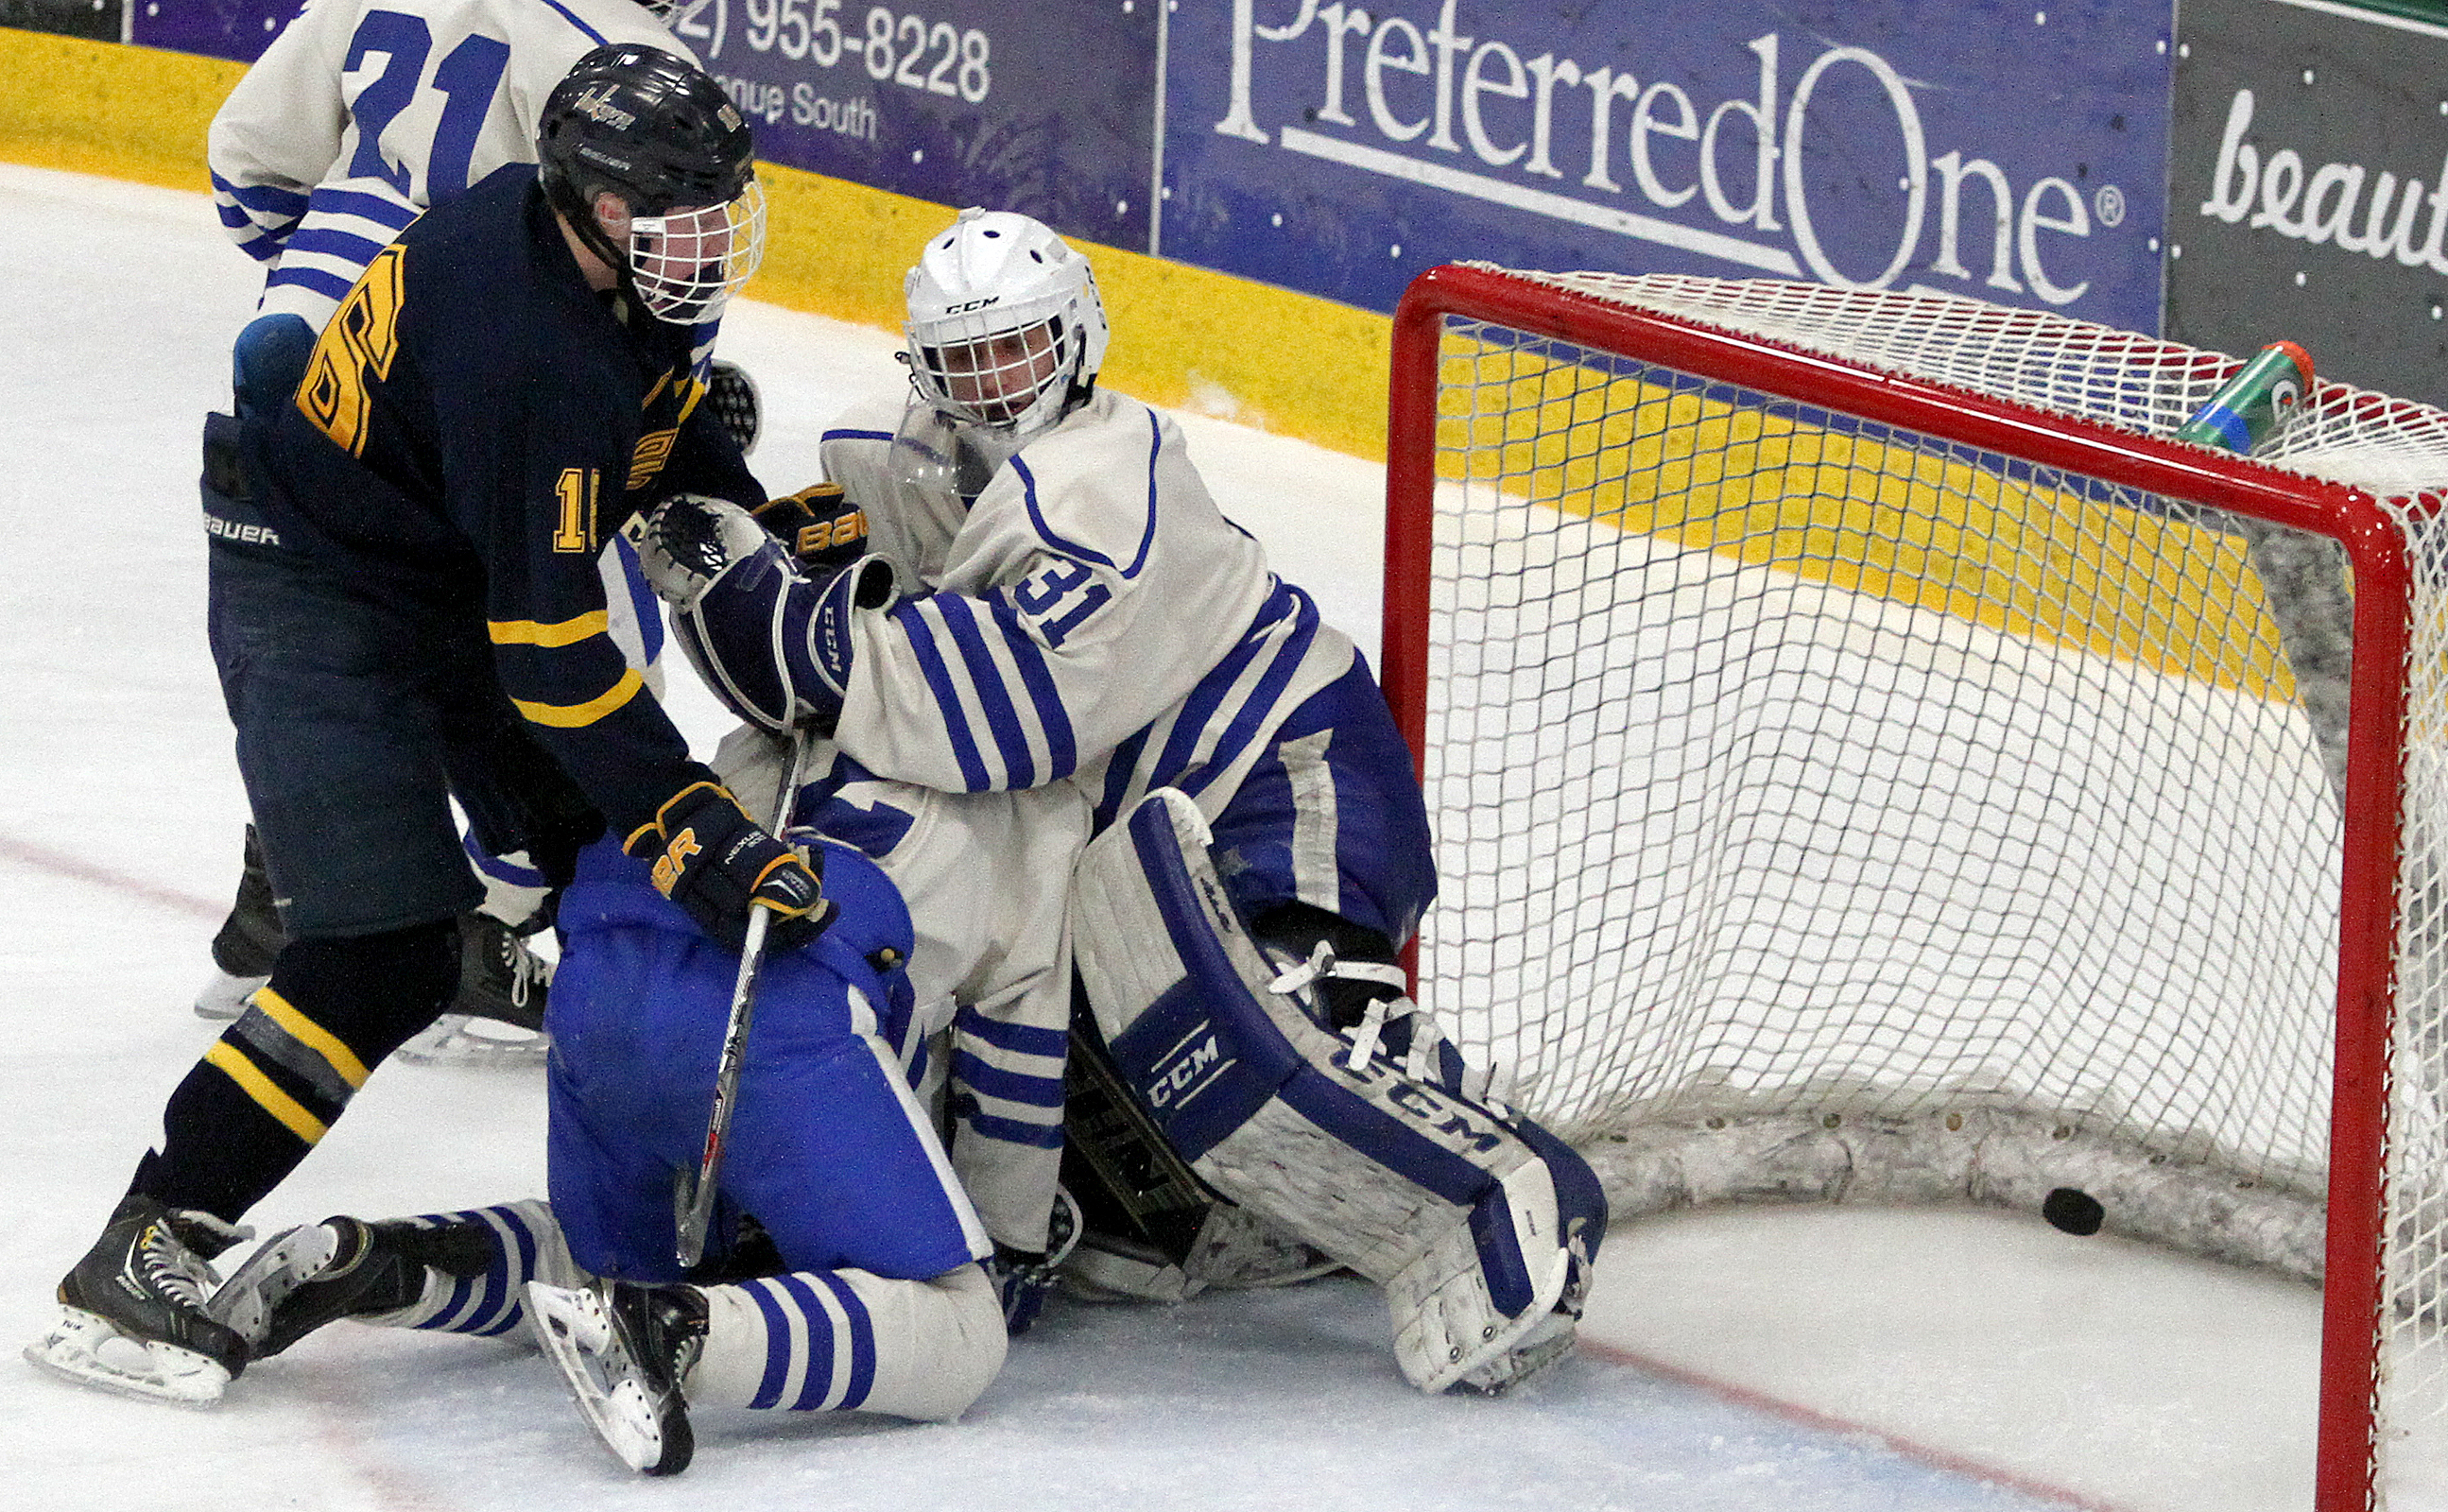 MN H.S.: Prior Lake Upsets Minnetonka To Reach First Section Championship Game